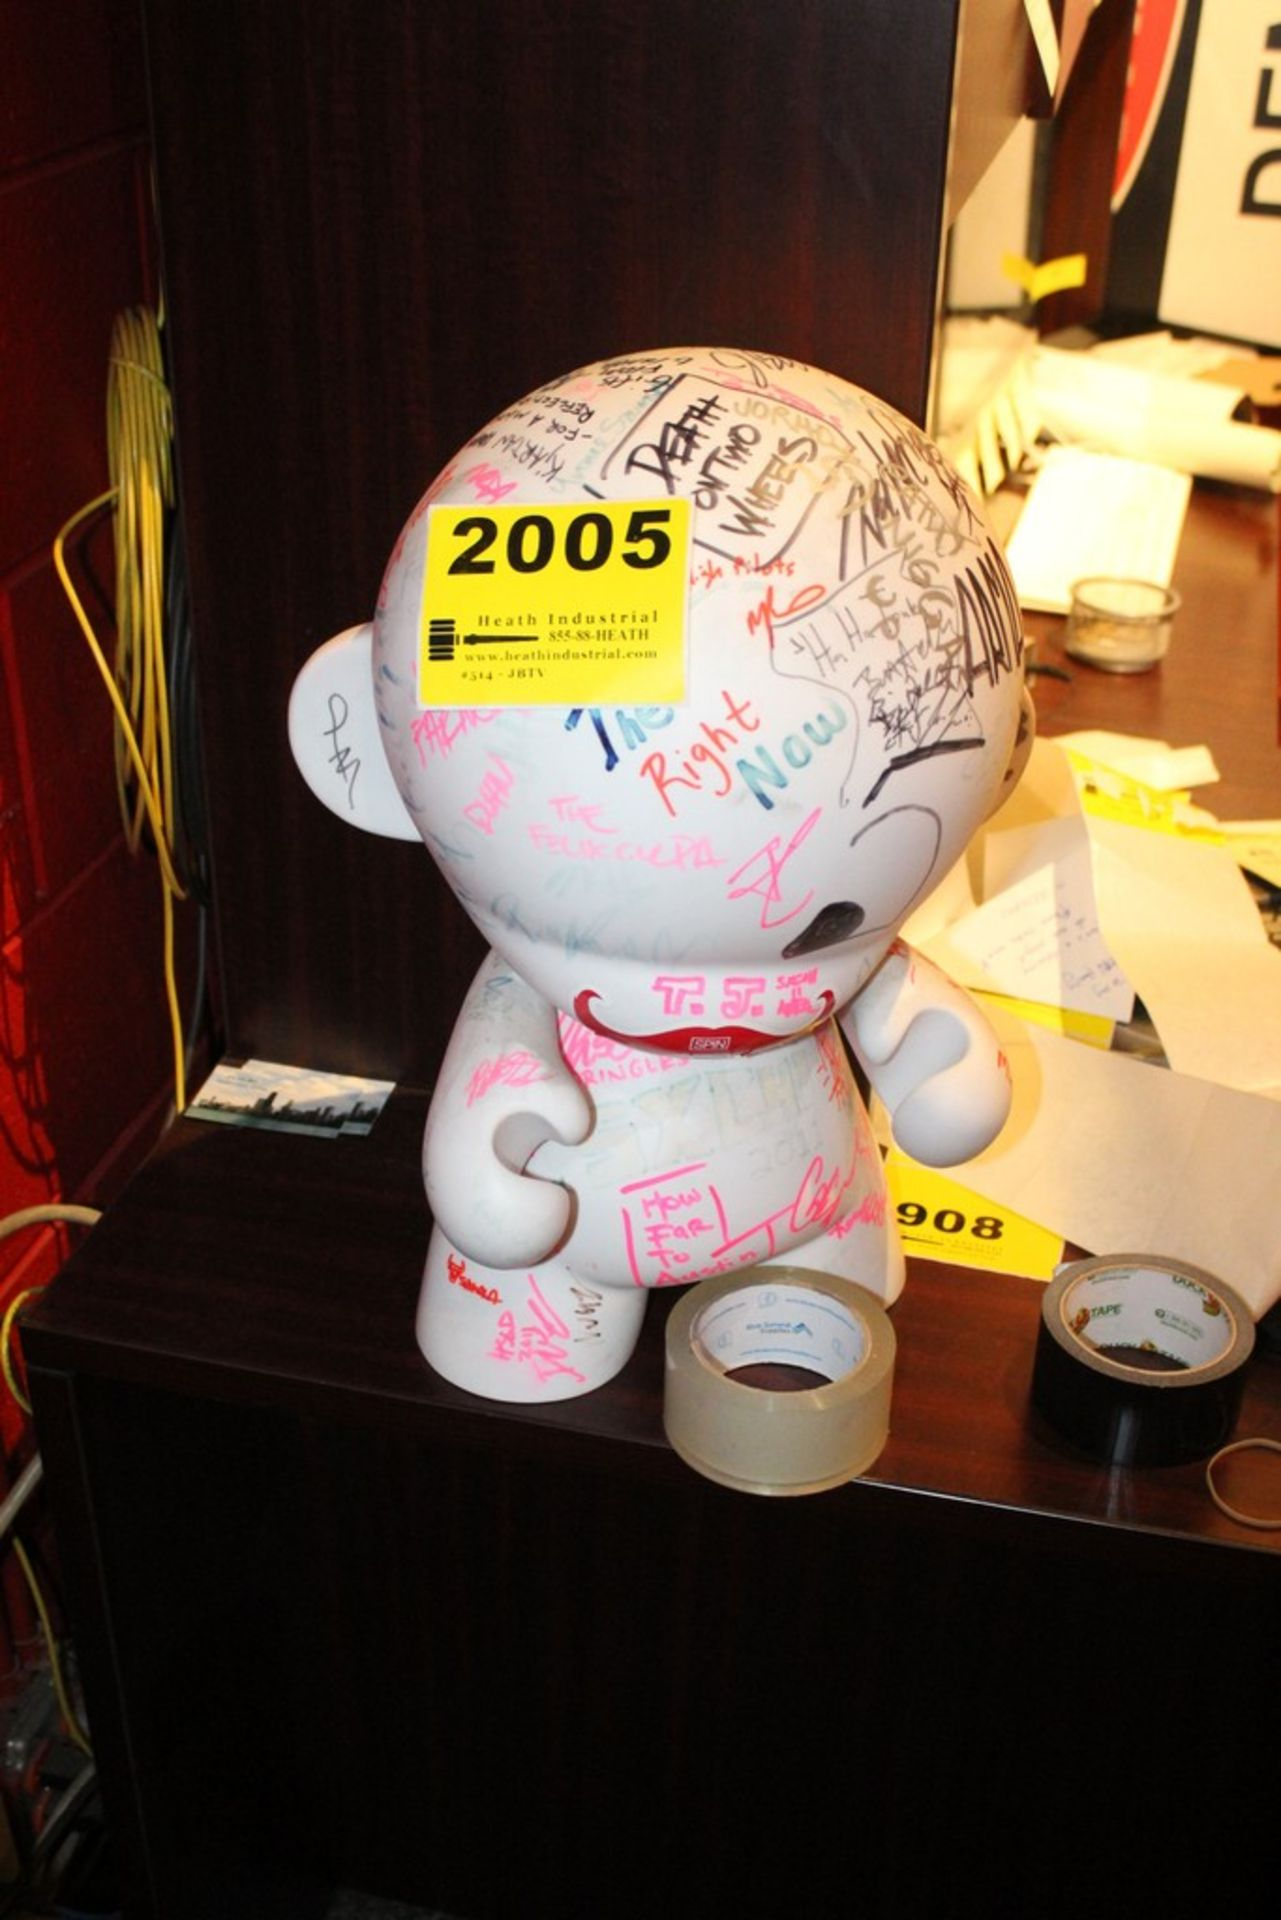 Lot 2005 - Plastic Doll Autographed by various artists from South by Southwest Festival